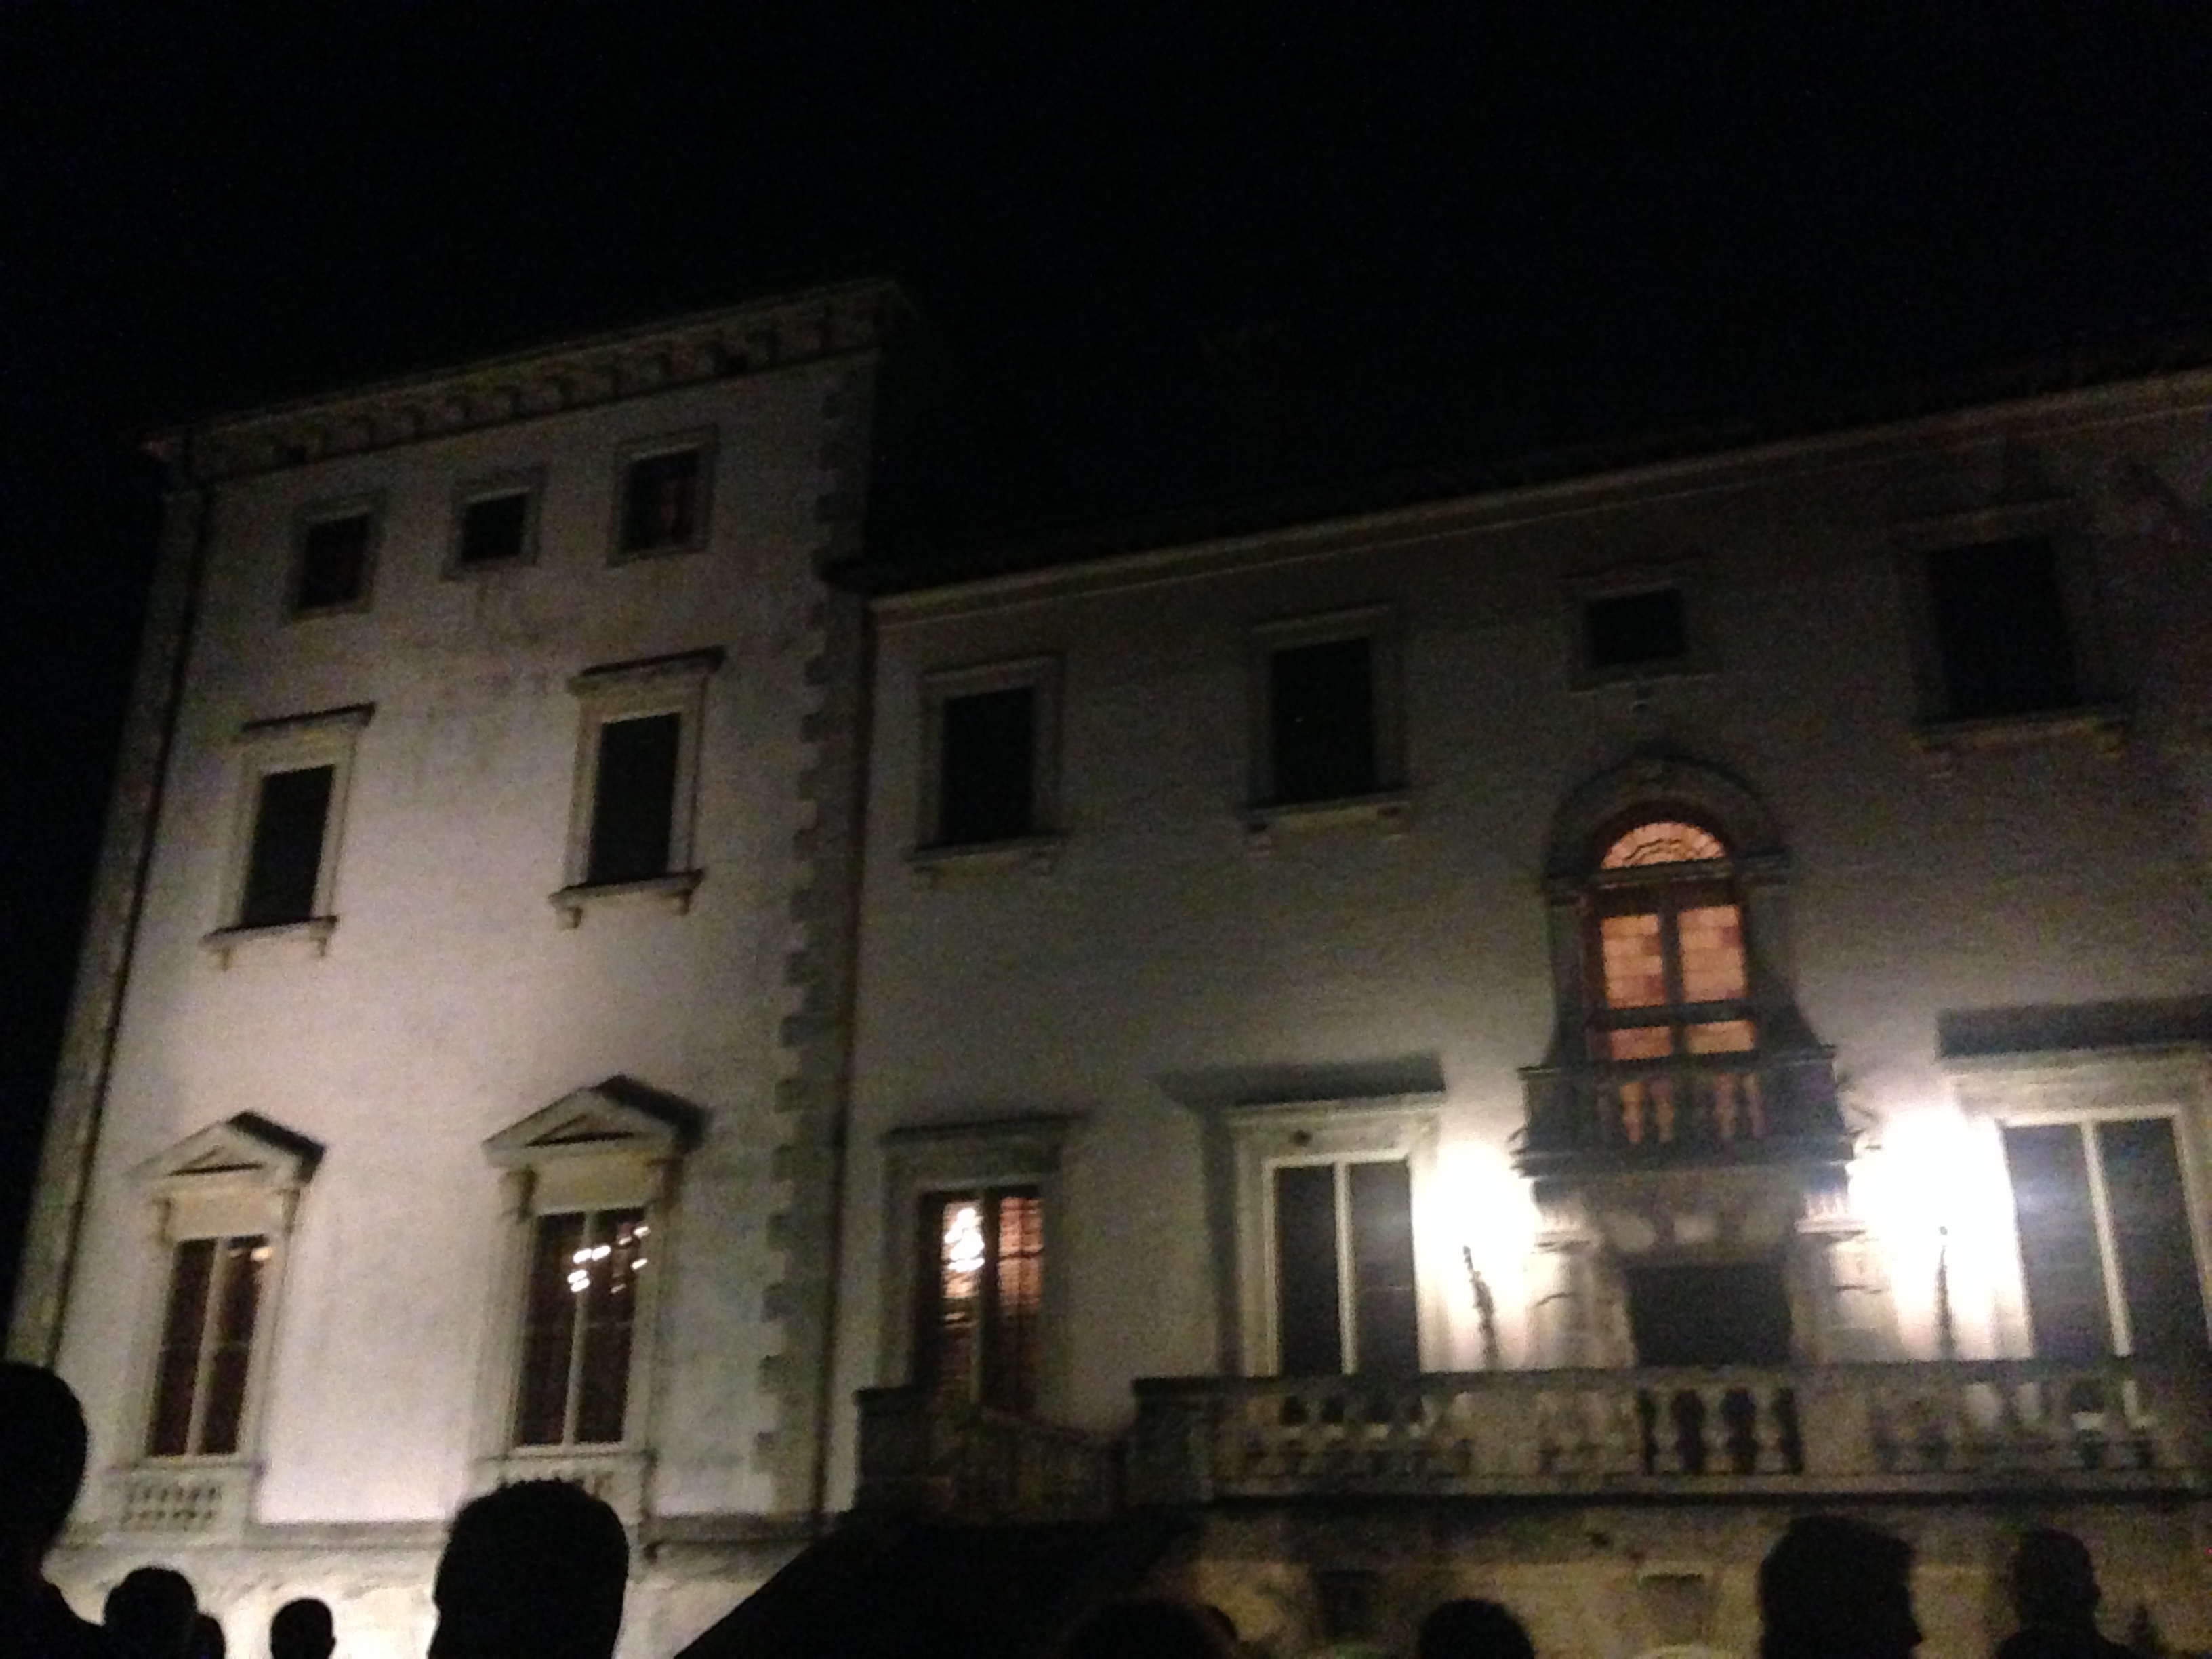 Honestly a really bad shot of Vizcaya, but wanted to give an impression of the villa